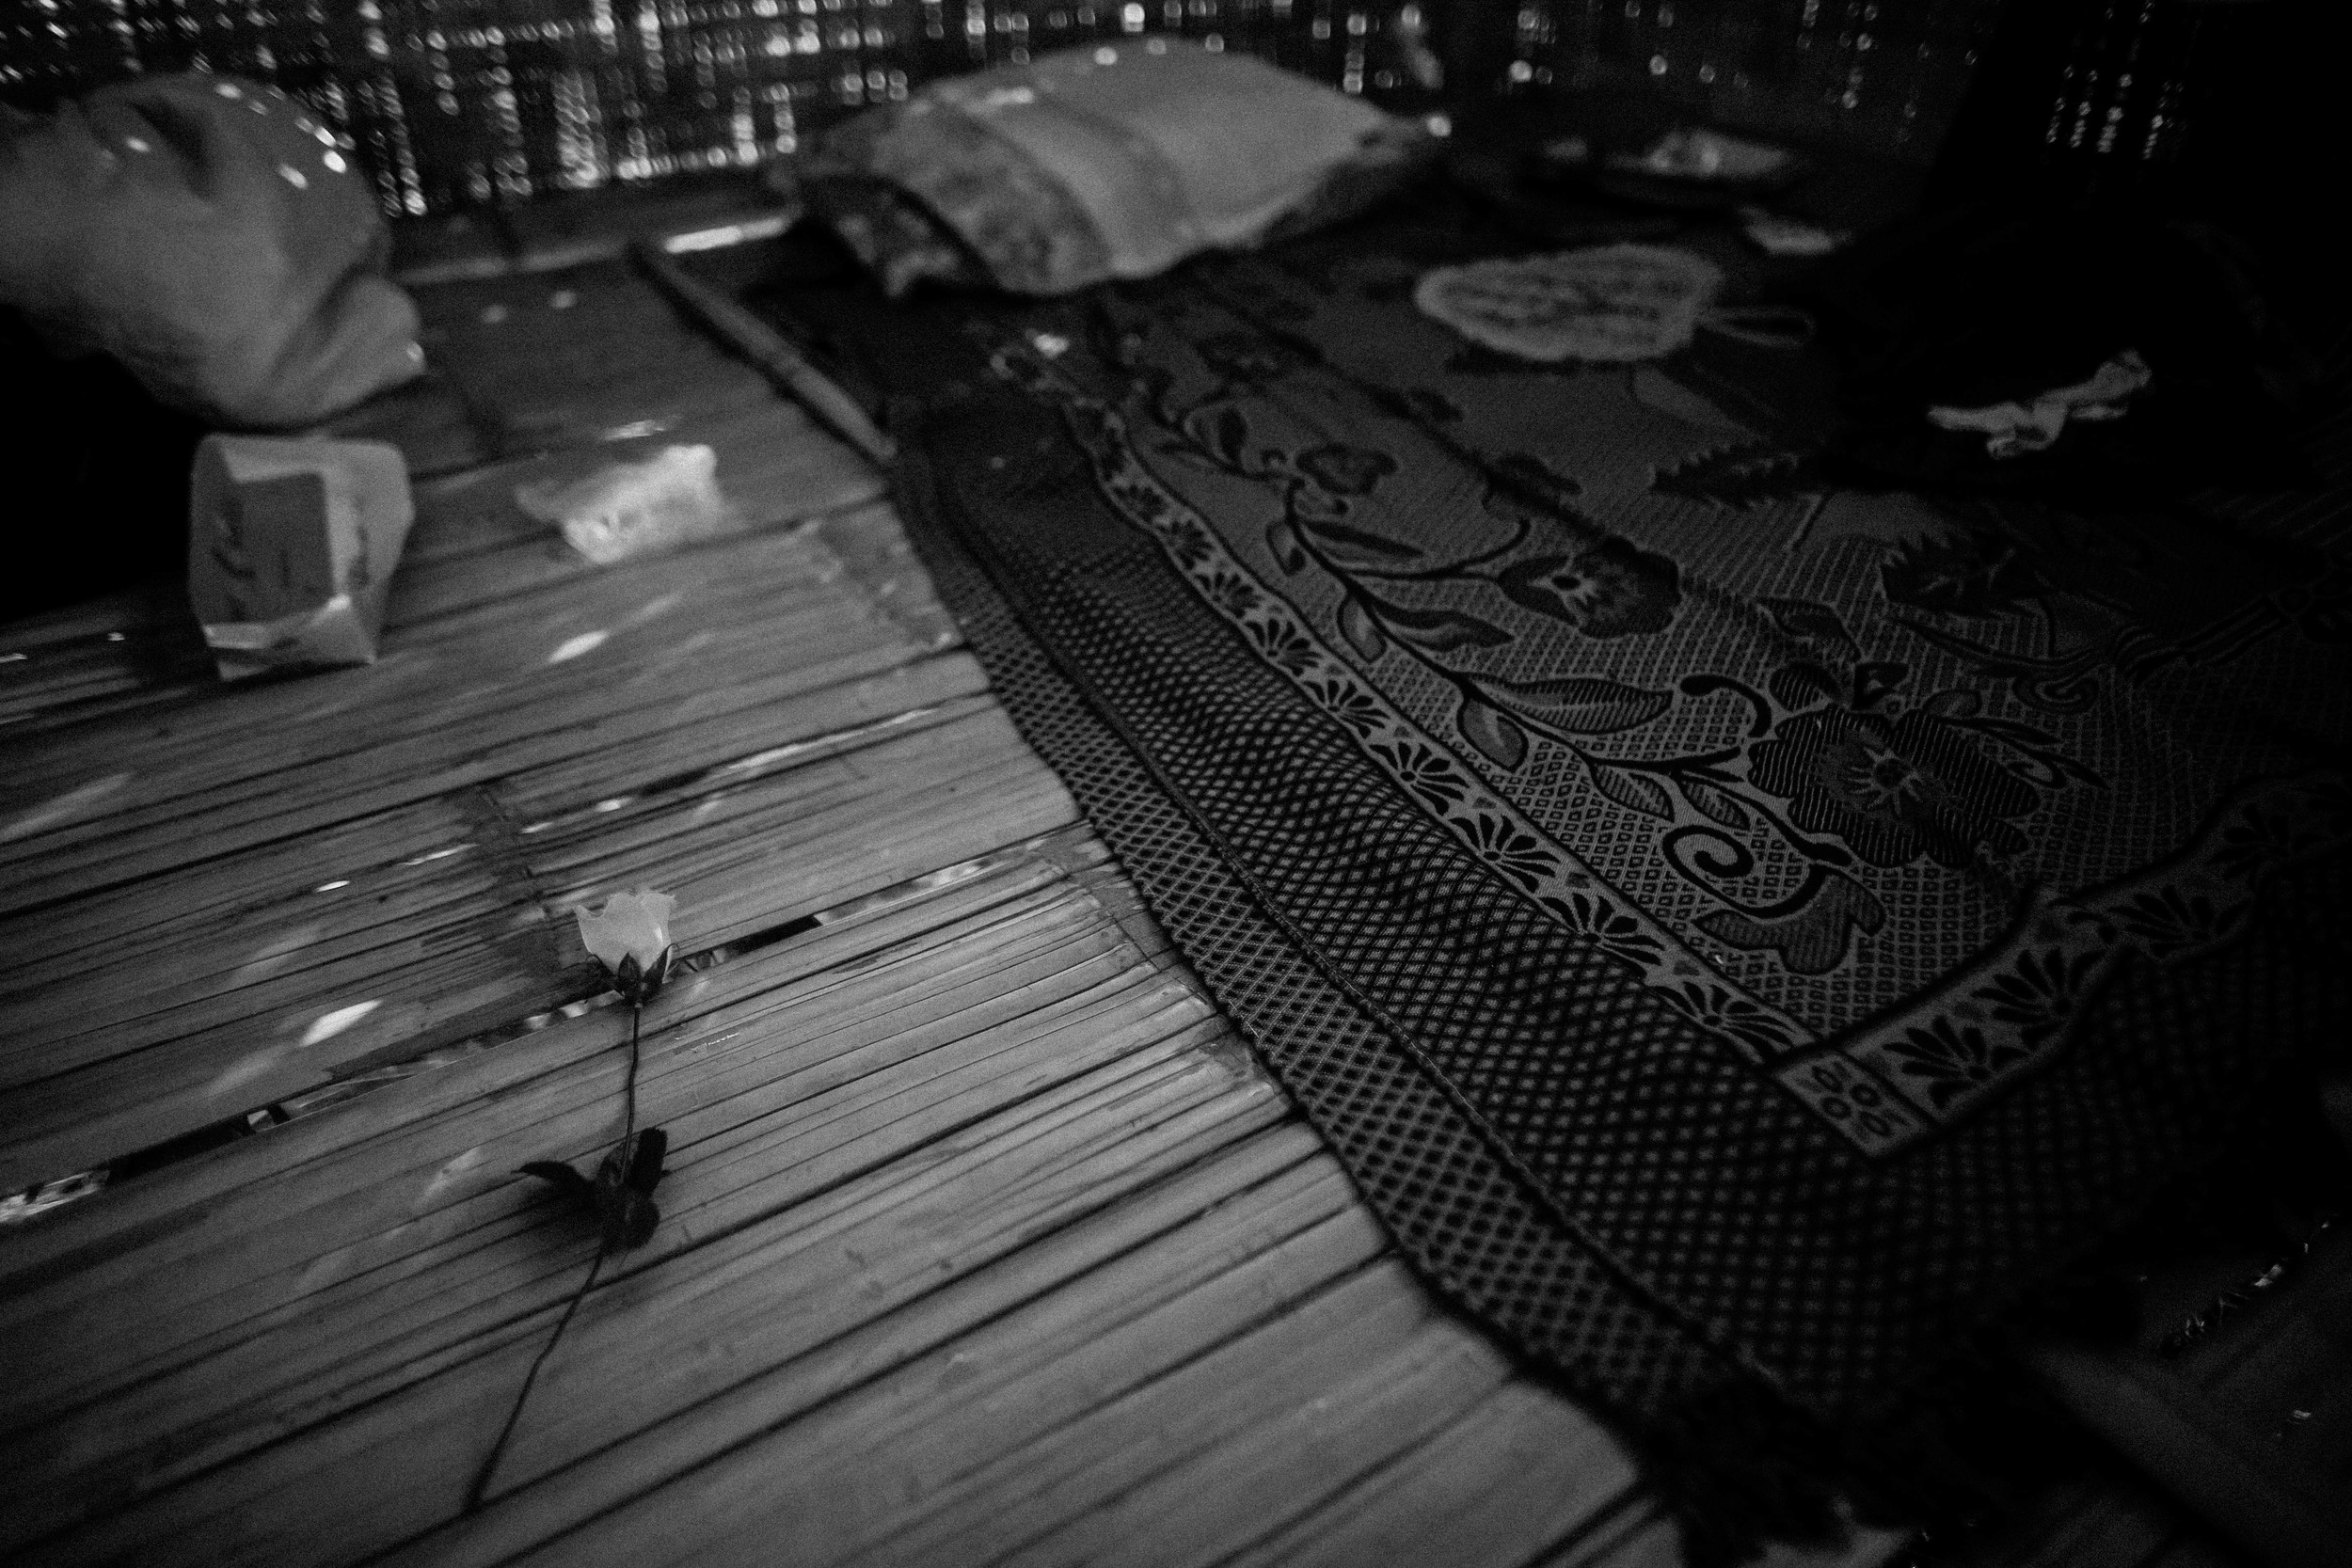 An artificial rose left besides the bed of one of the students at Aung Mintha. Roses were given to the students after a choir performance in the village.